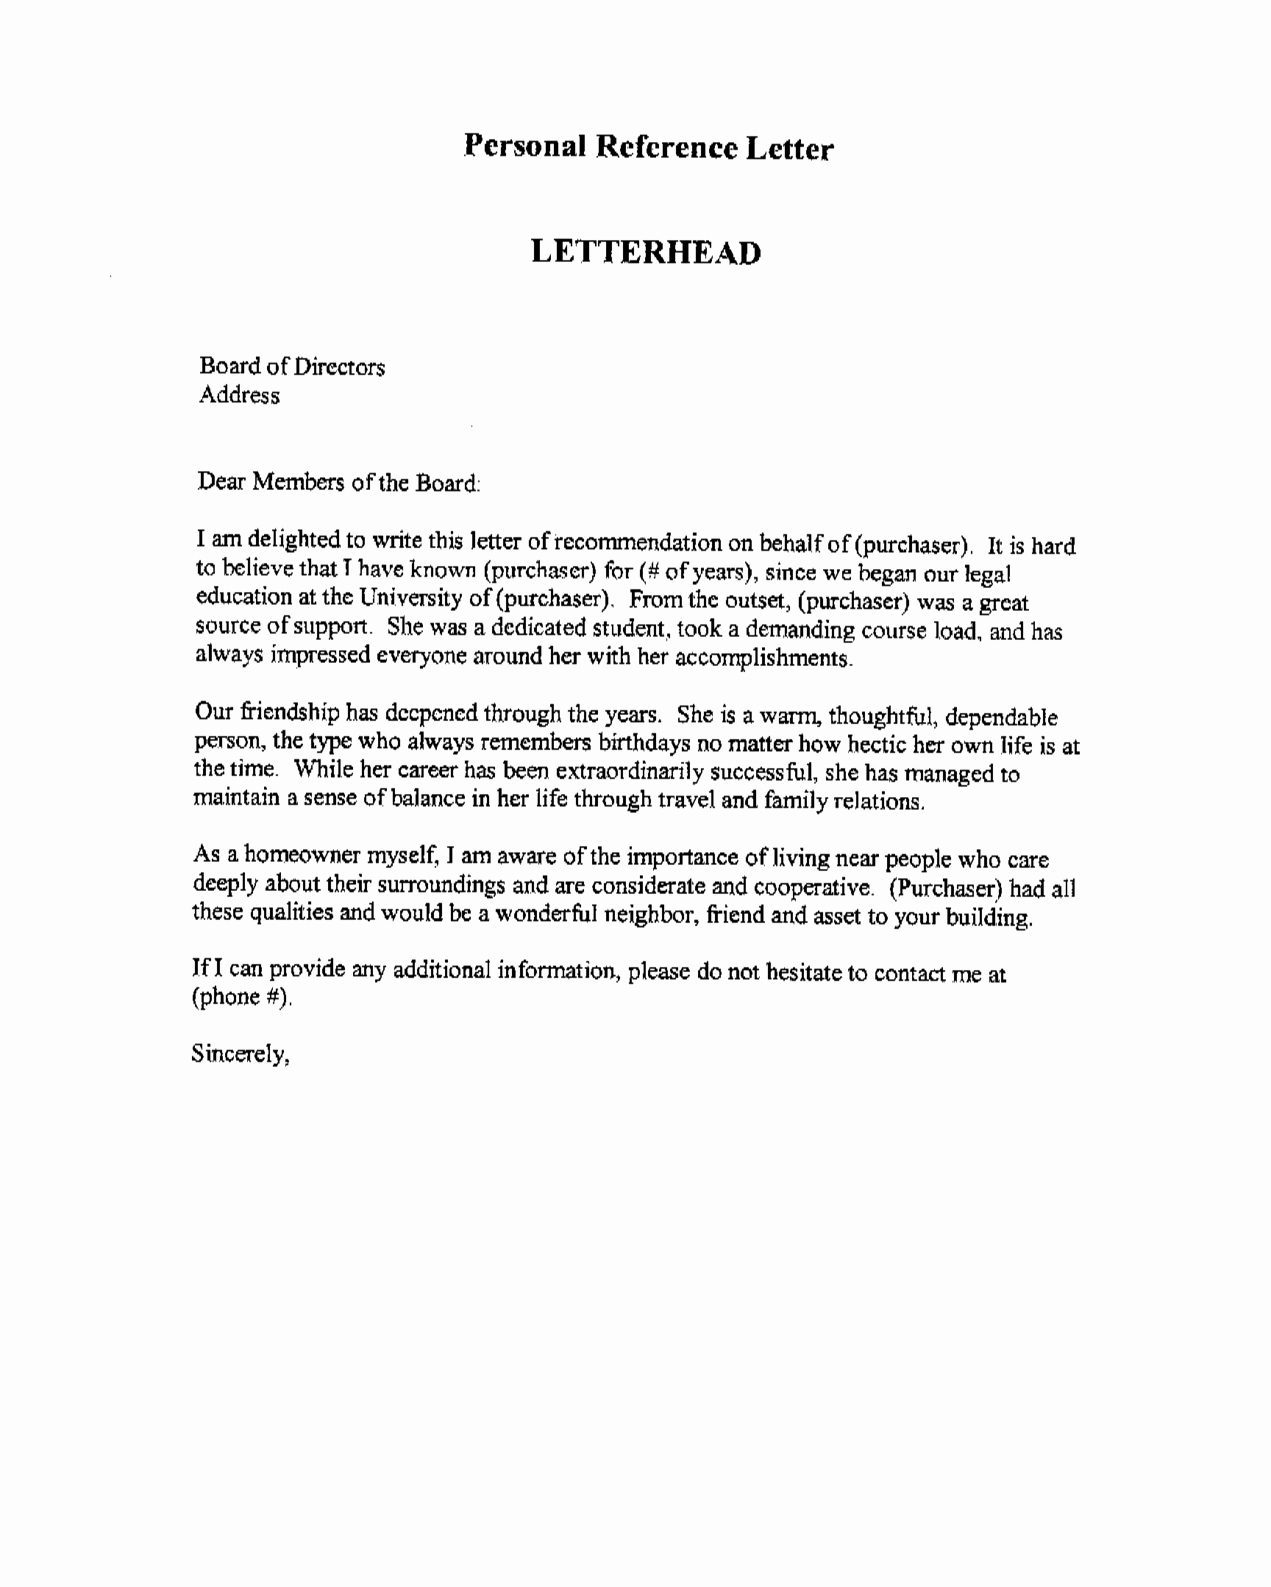 Letter Of Recomendation Templates Lovely Professional Re Mendation Letter This is An Example Of